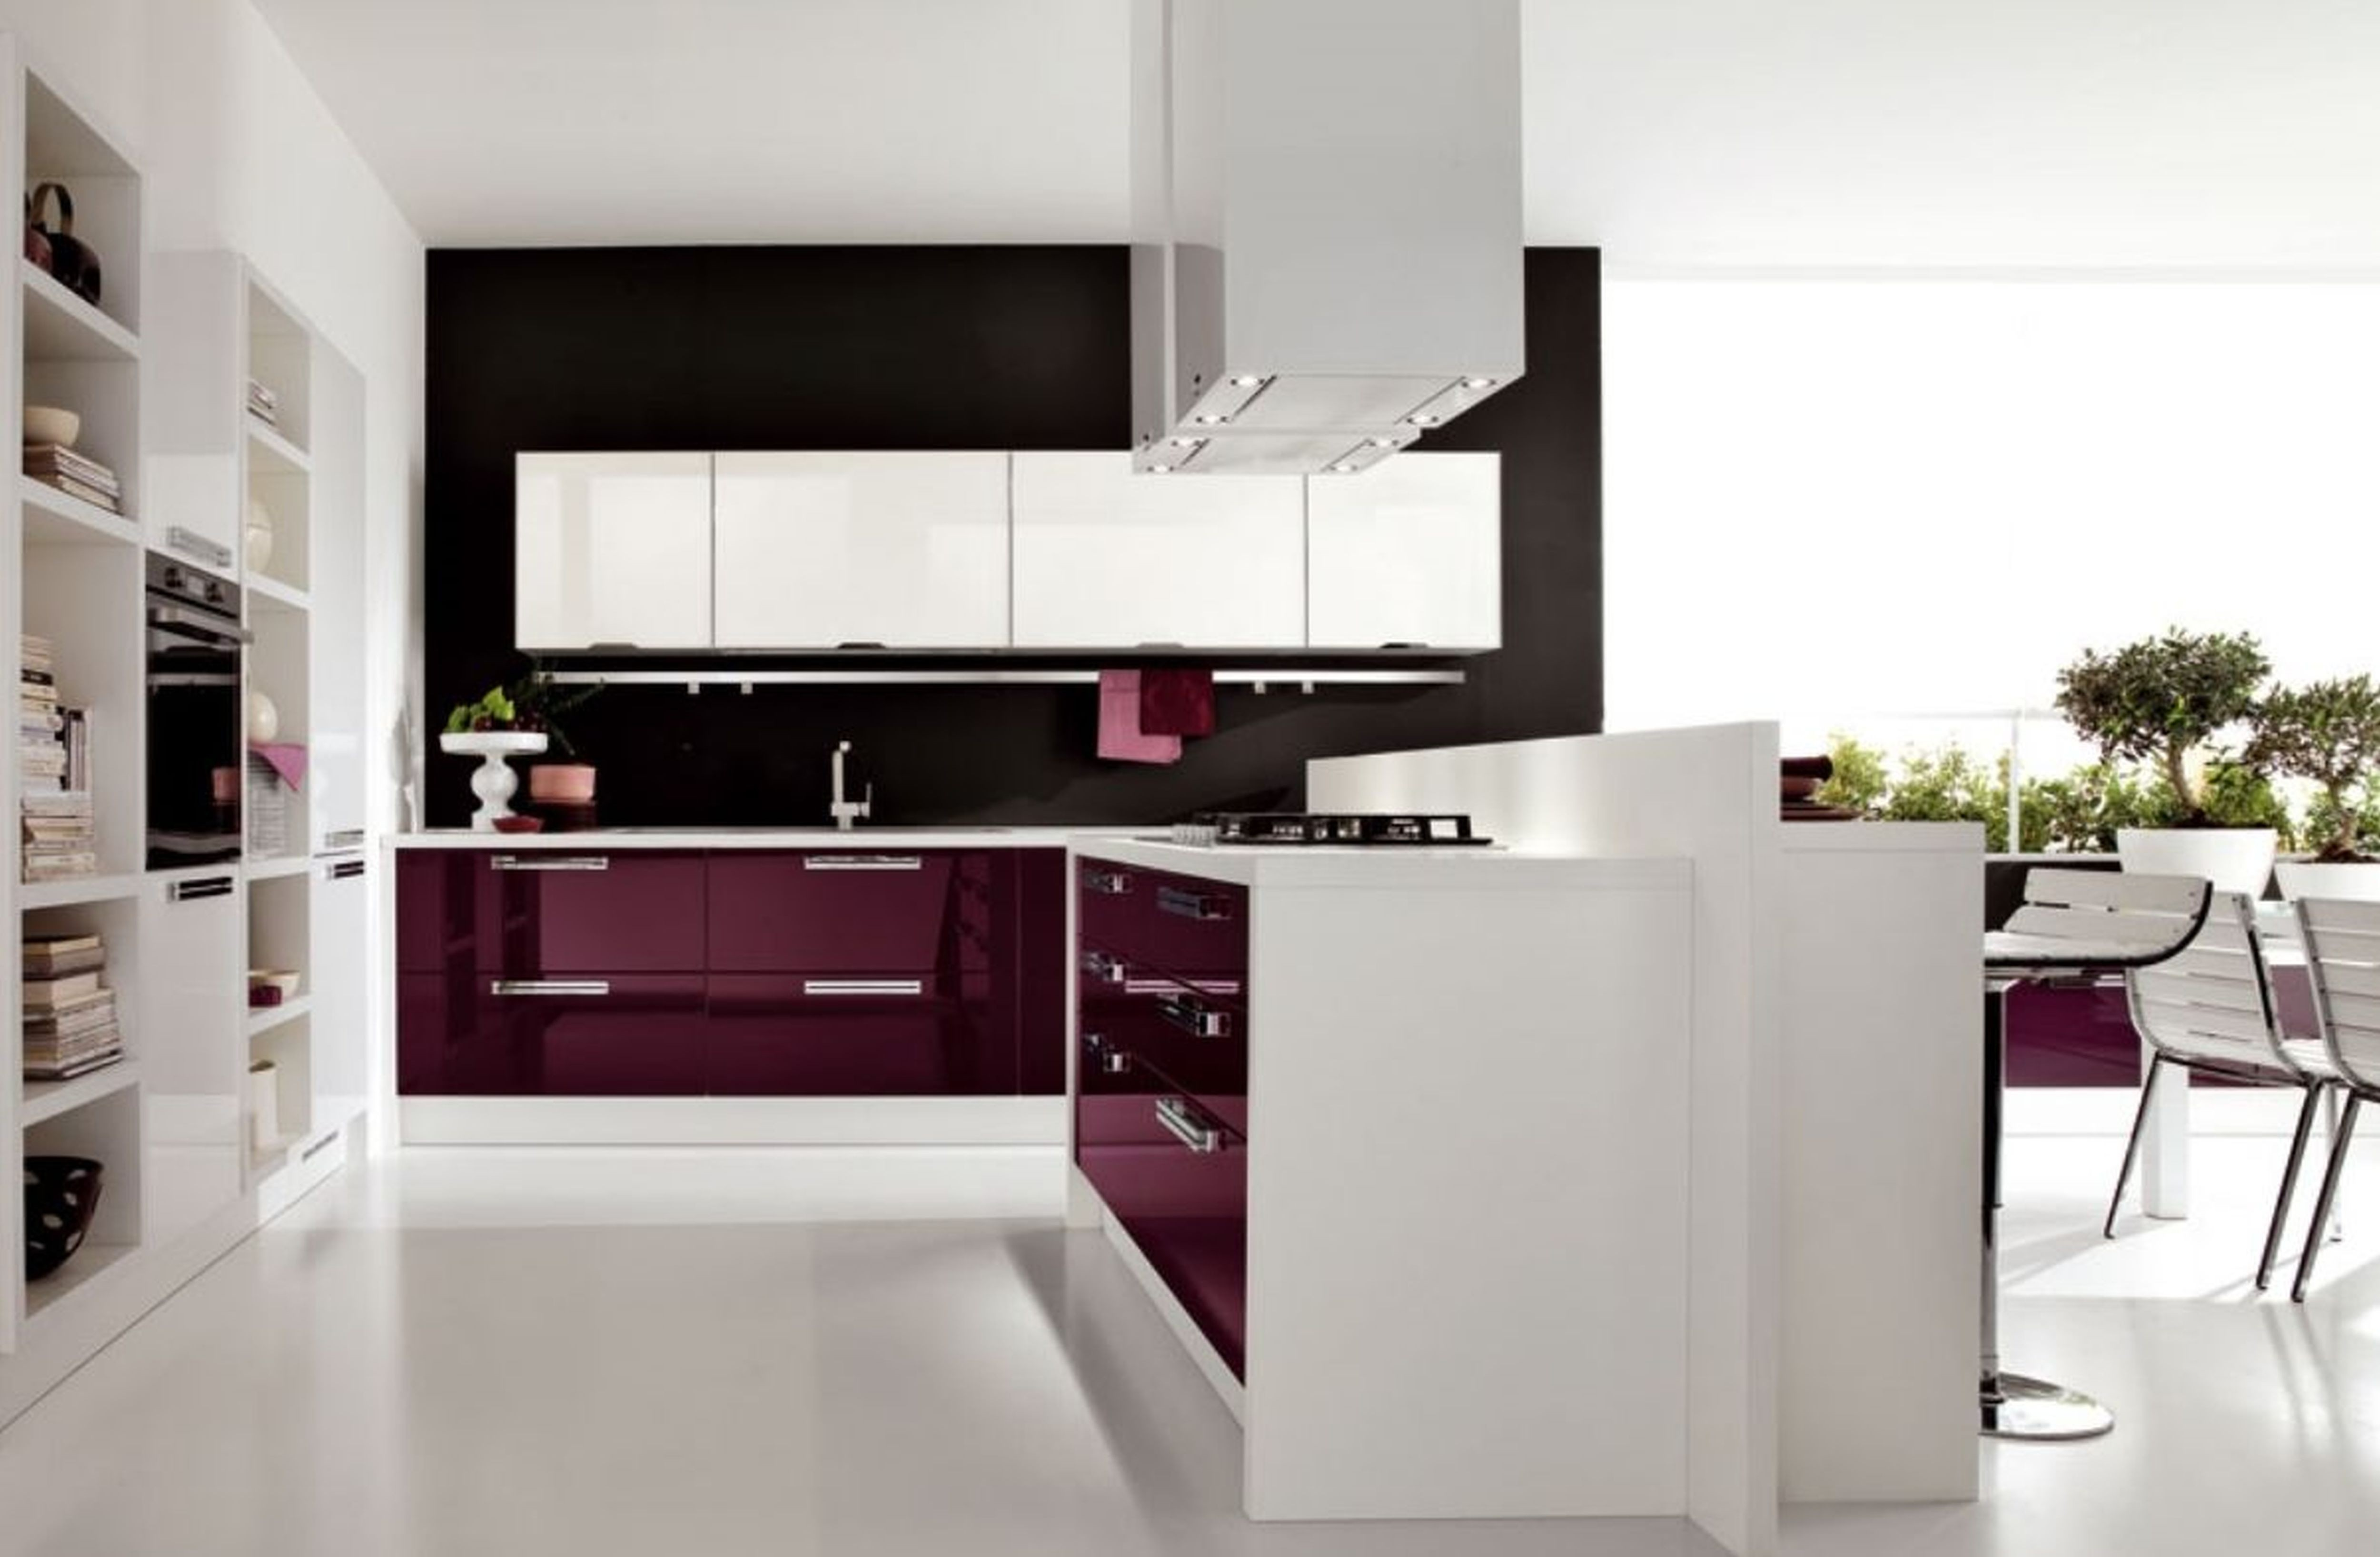 types of kitchen countertops materials modern kitchen countertops VIEW IN GALLERY modern laminate kitchen countertops with white cabinets and storage